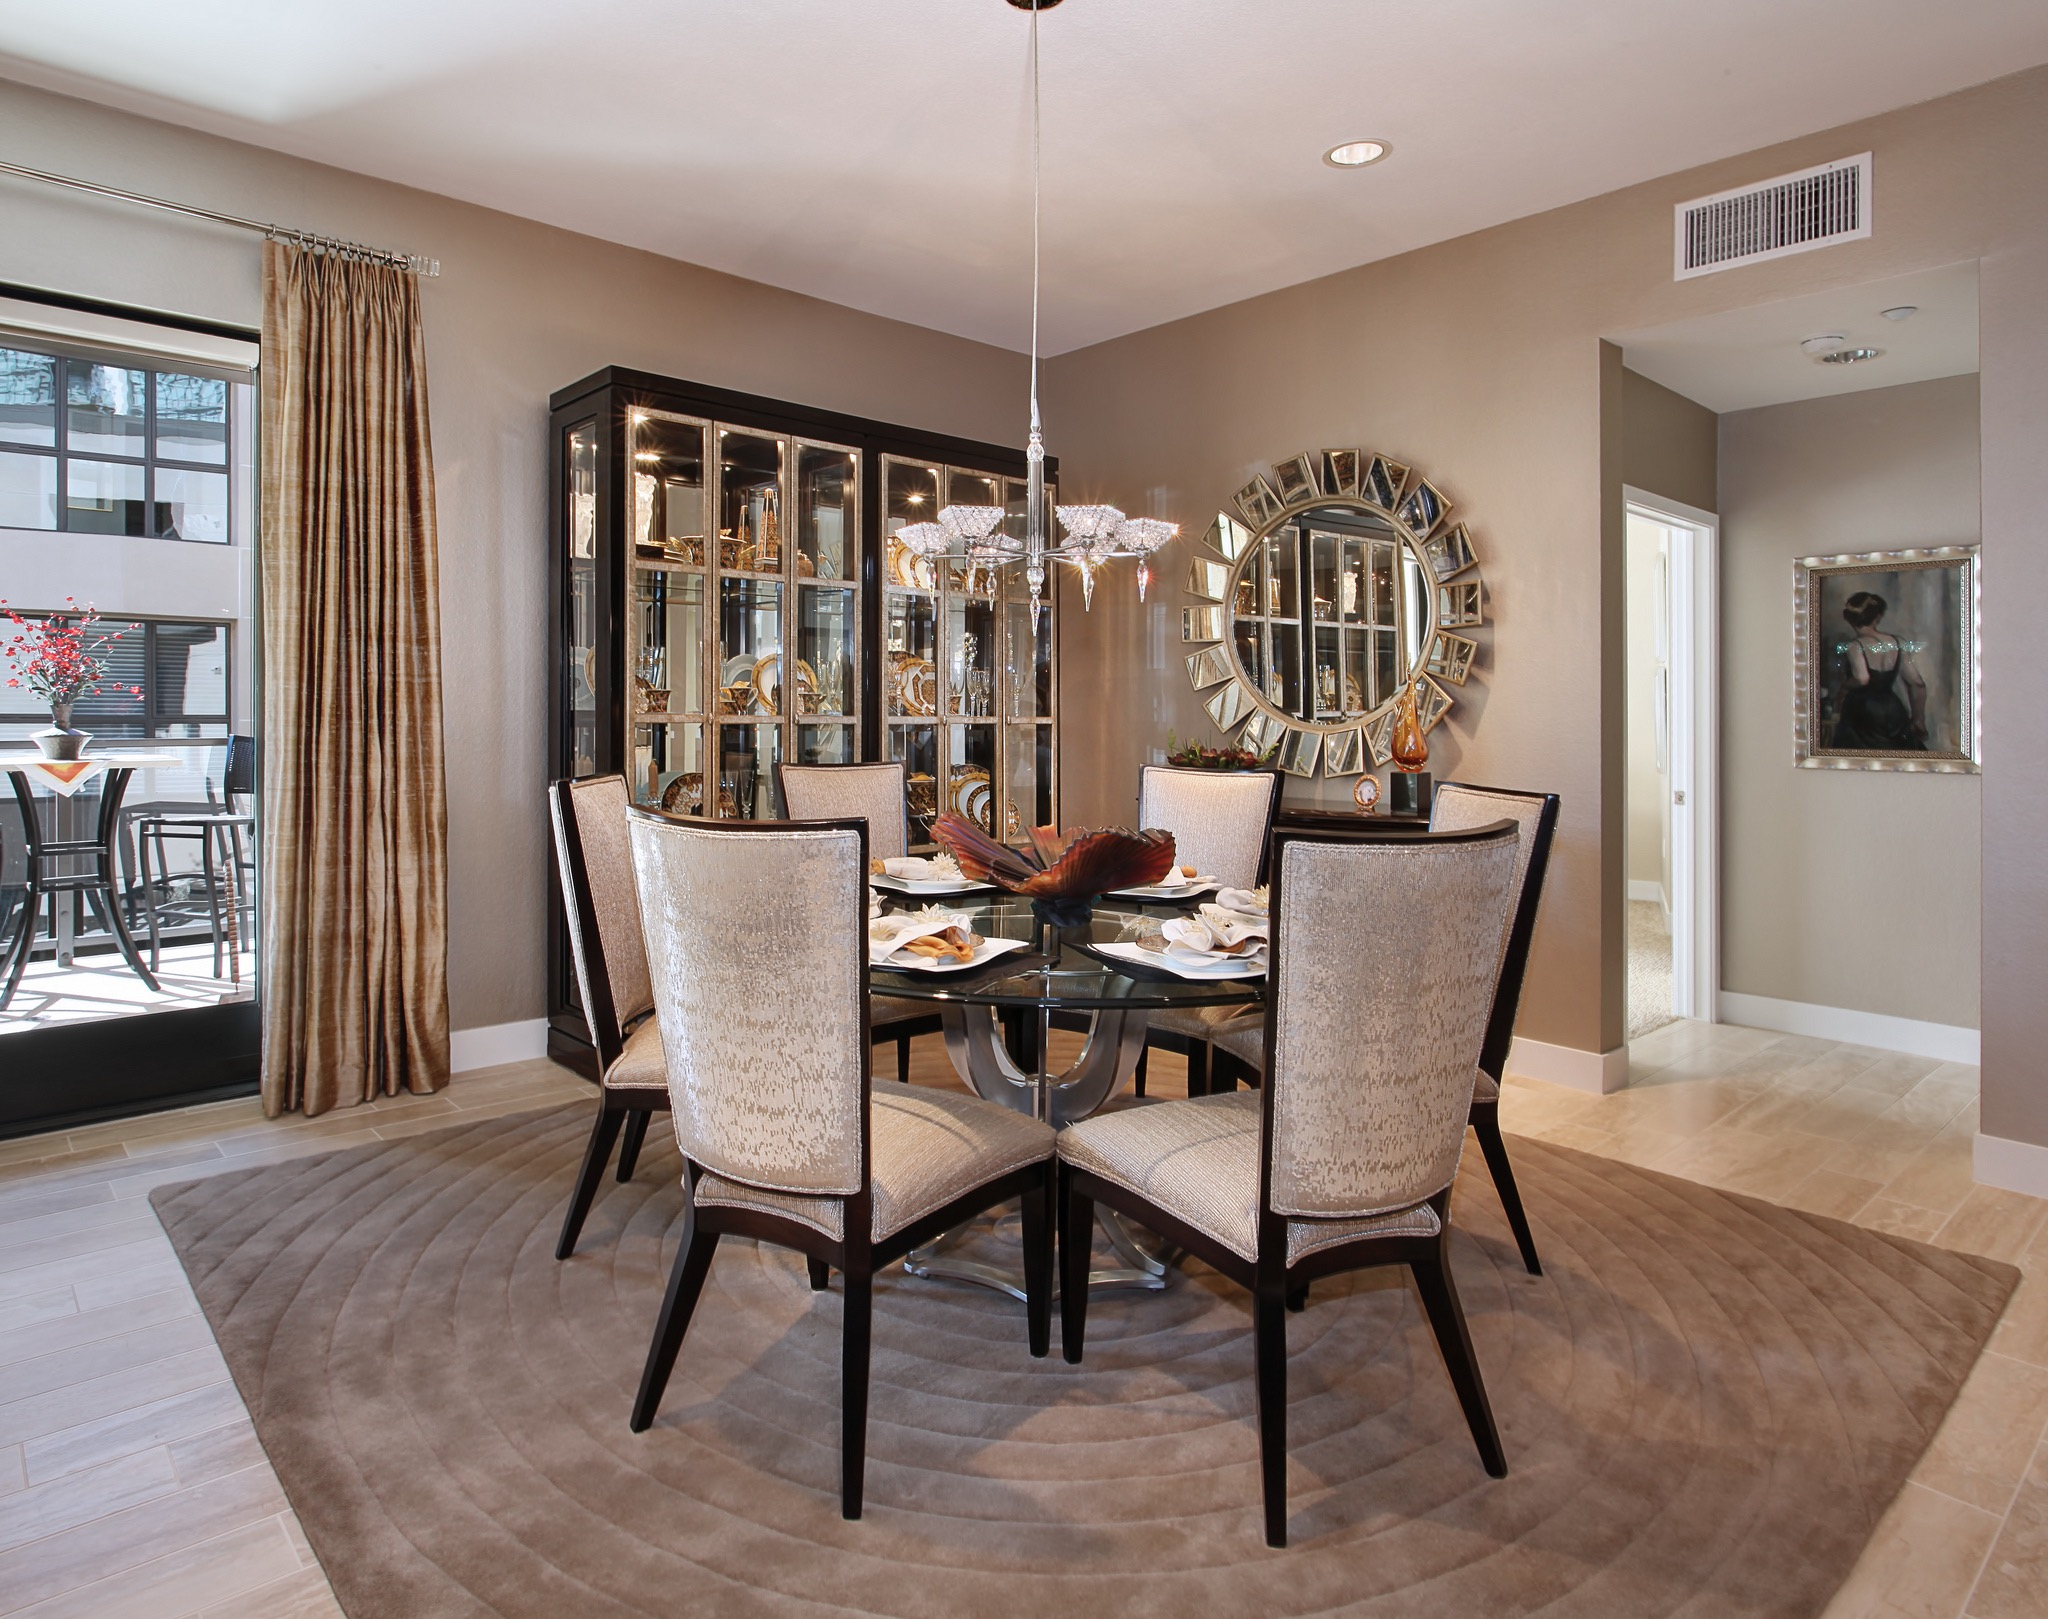 Glamorous Formal Dining Room With Round Table (Image 22 of 30)